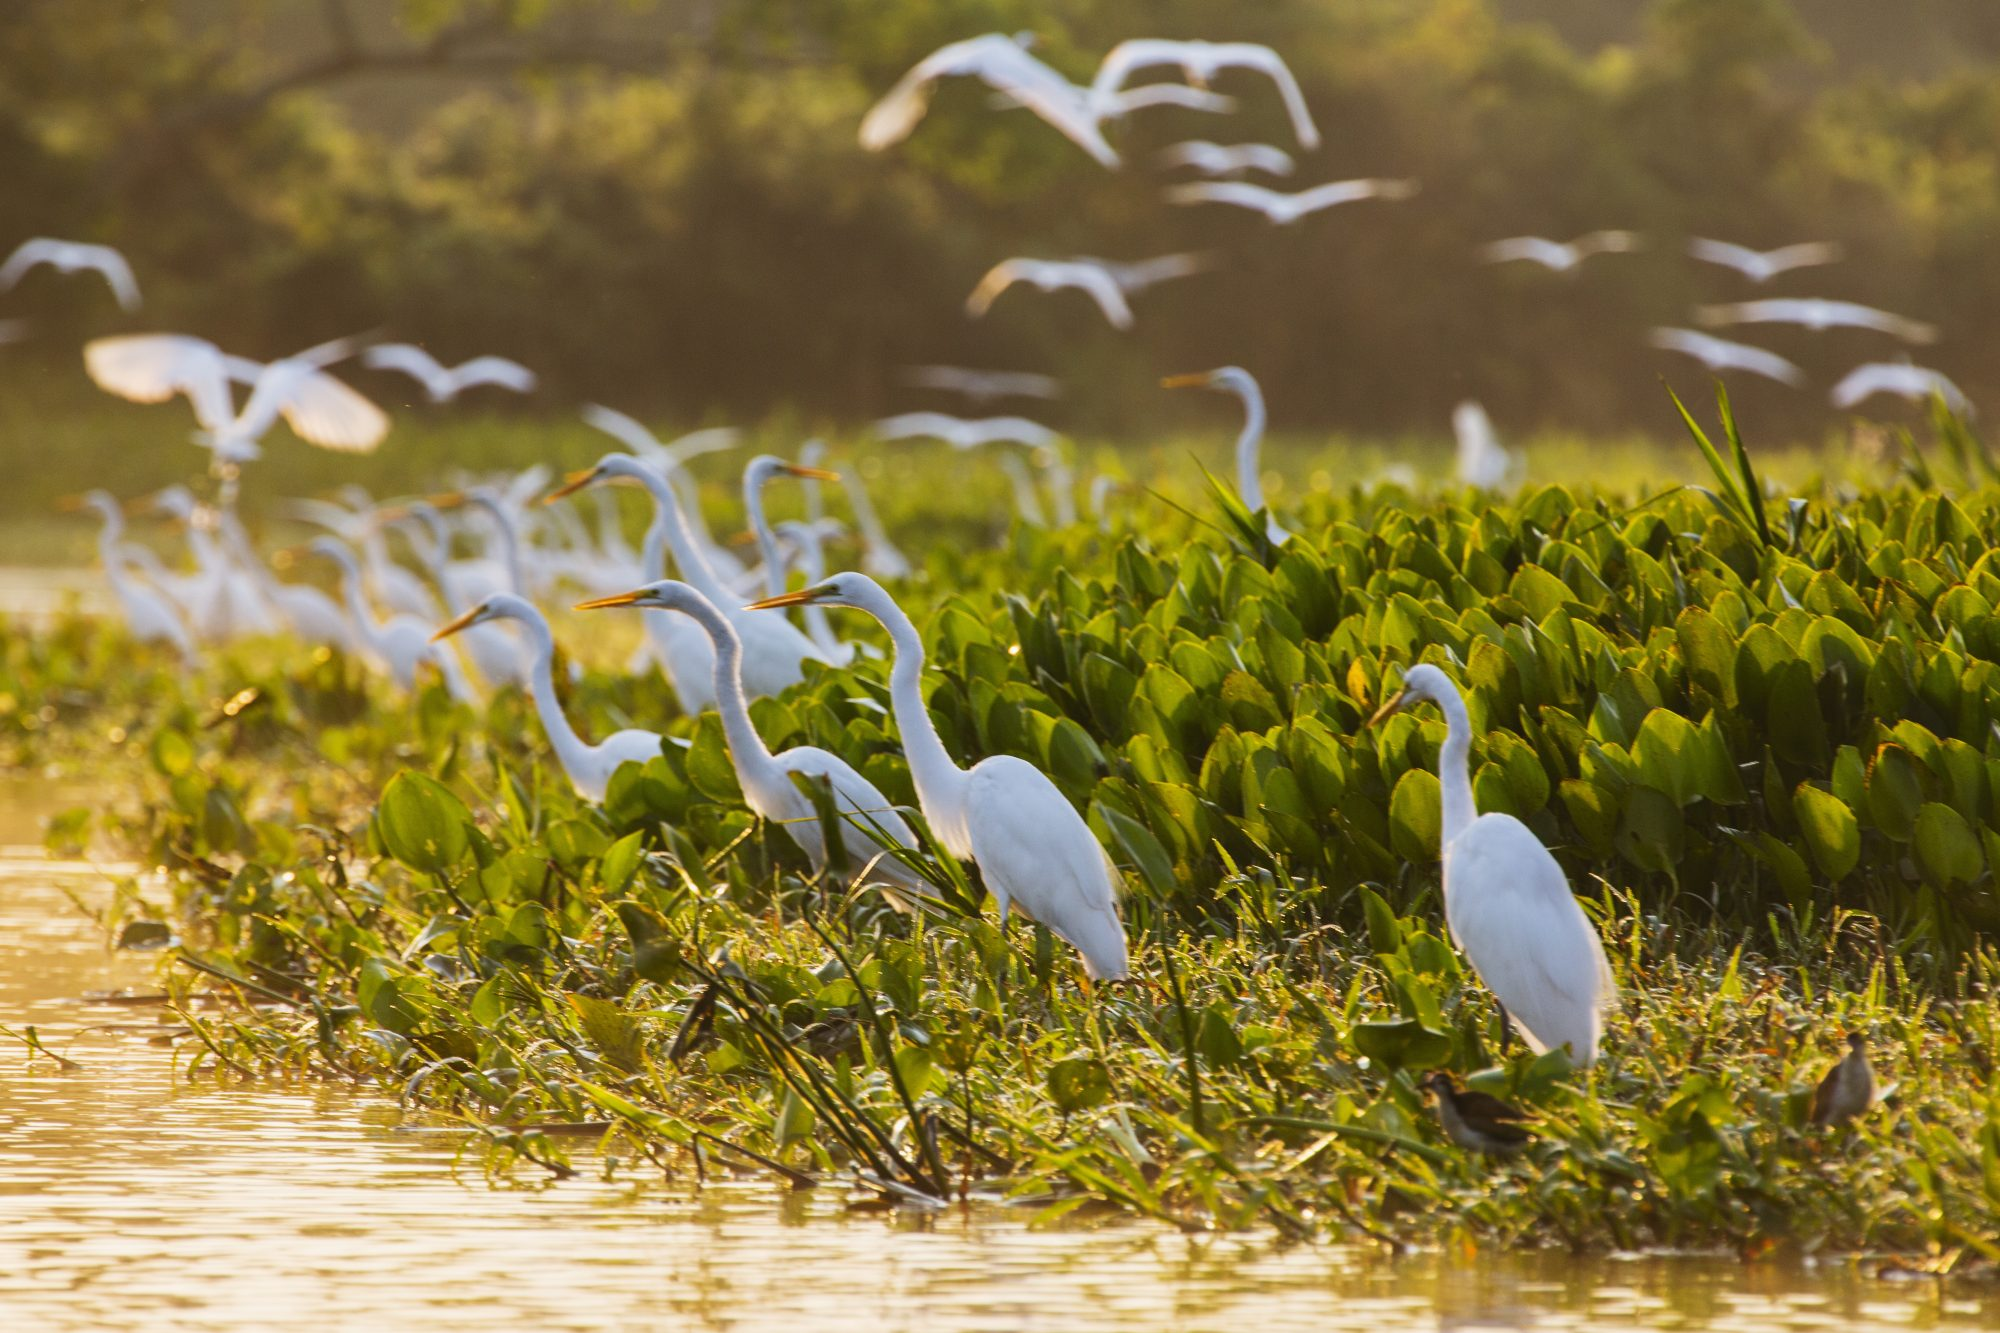 A congregation of great egrets in a marsh